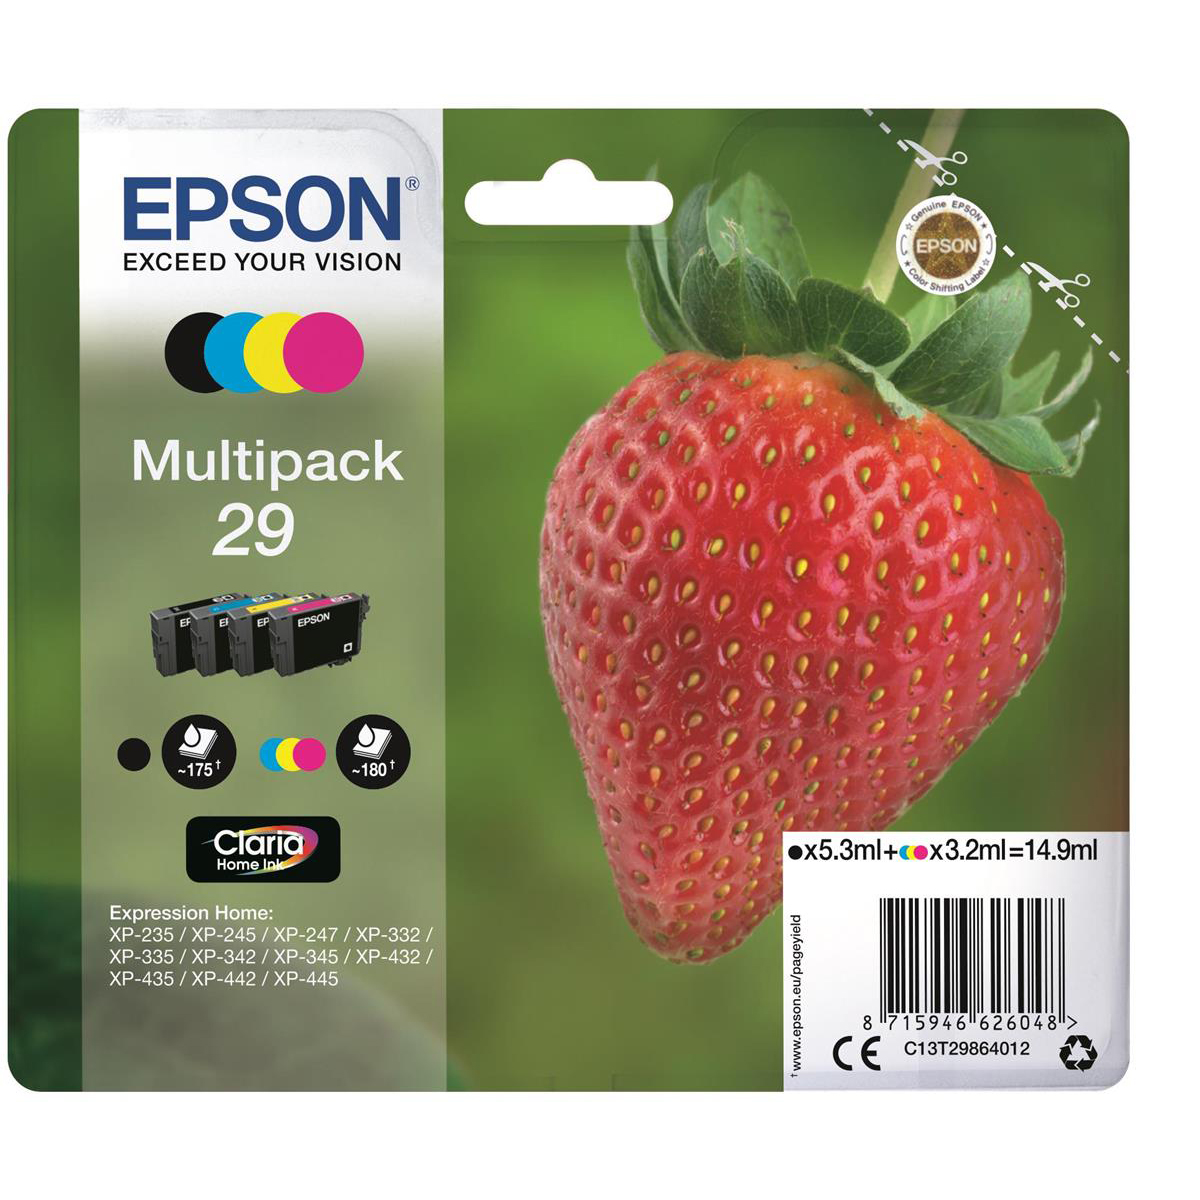 Epson 29 IJ Cart StrawberryPageLife 175pp Black 5.3ml 180pp Cyan/Mag/Yel 3.2ml Ref C13T29864012 [Pack 4]